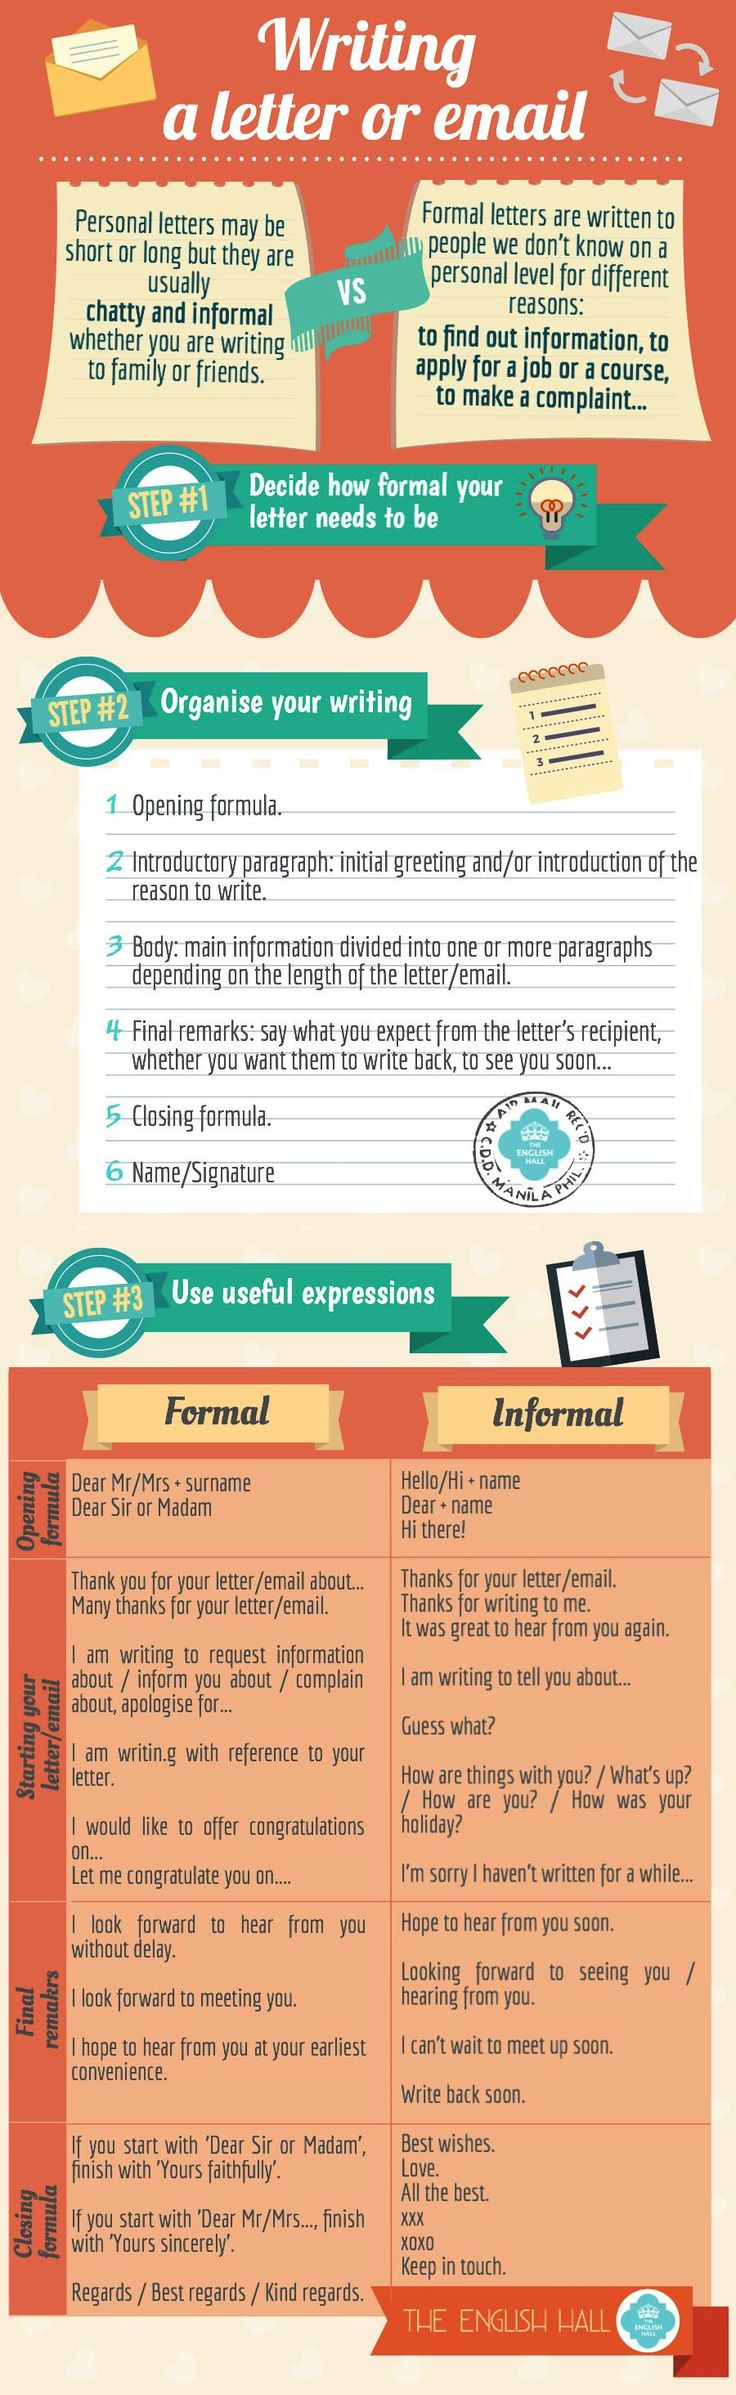 Writing a letter or email - formal vs informal